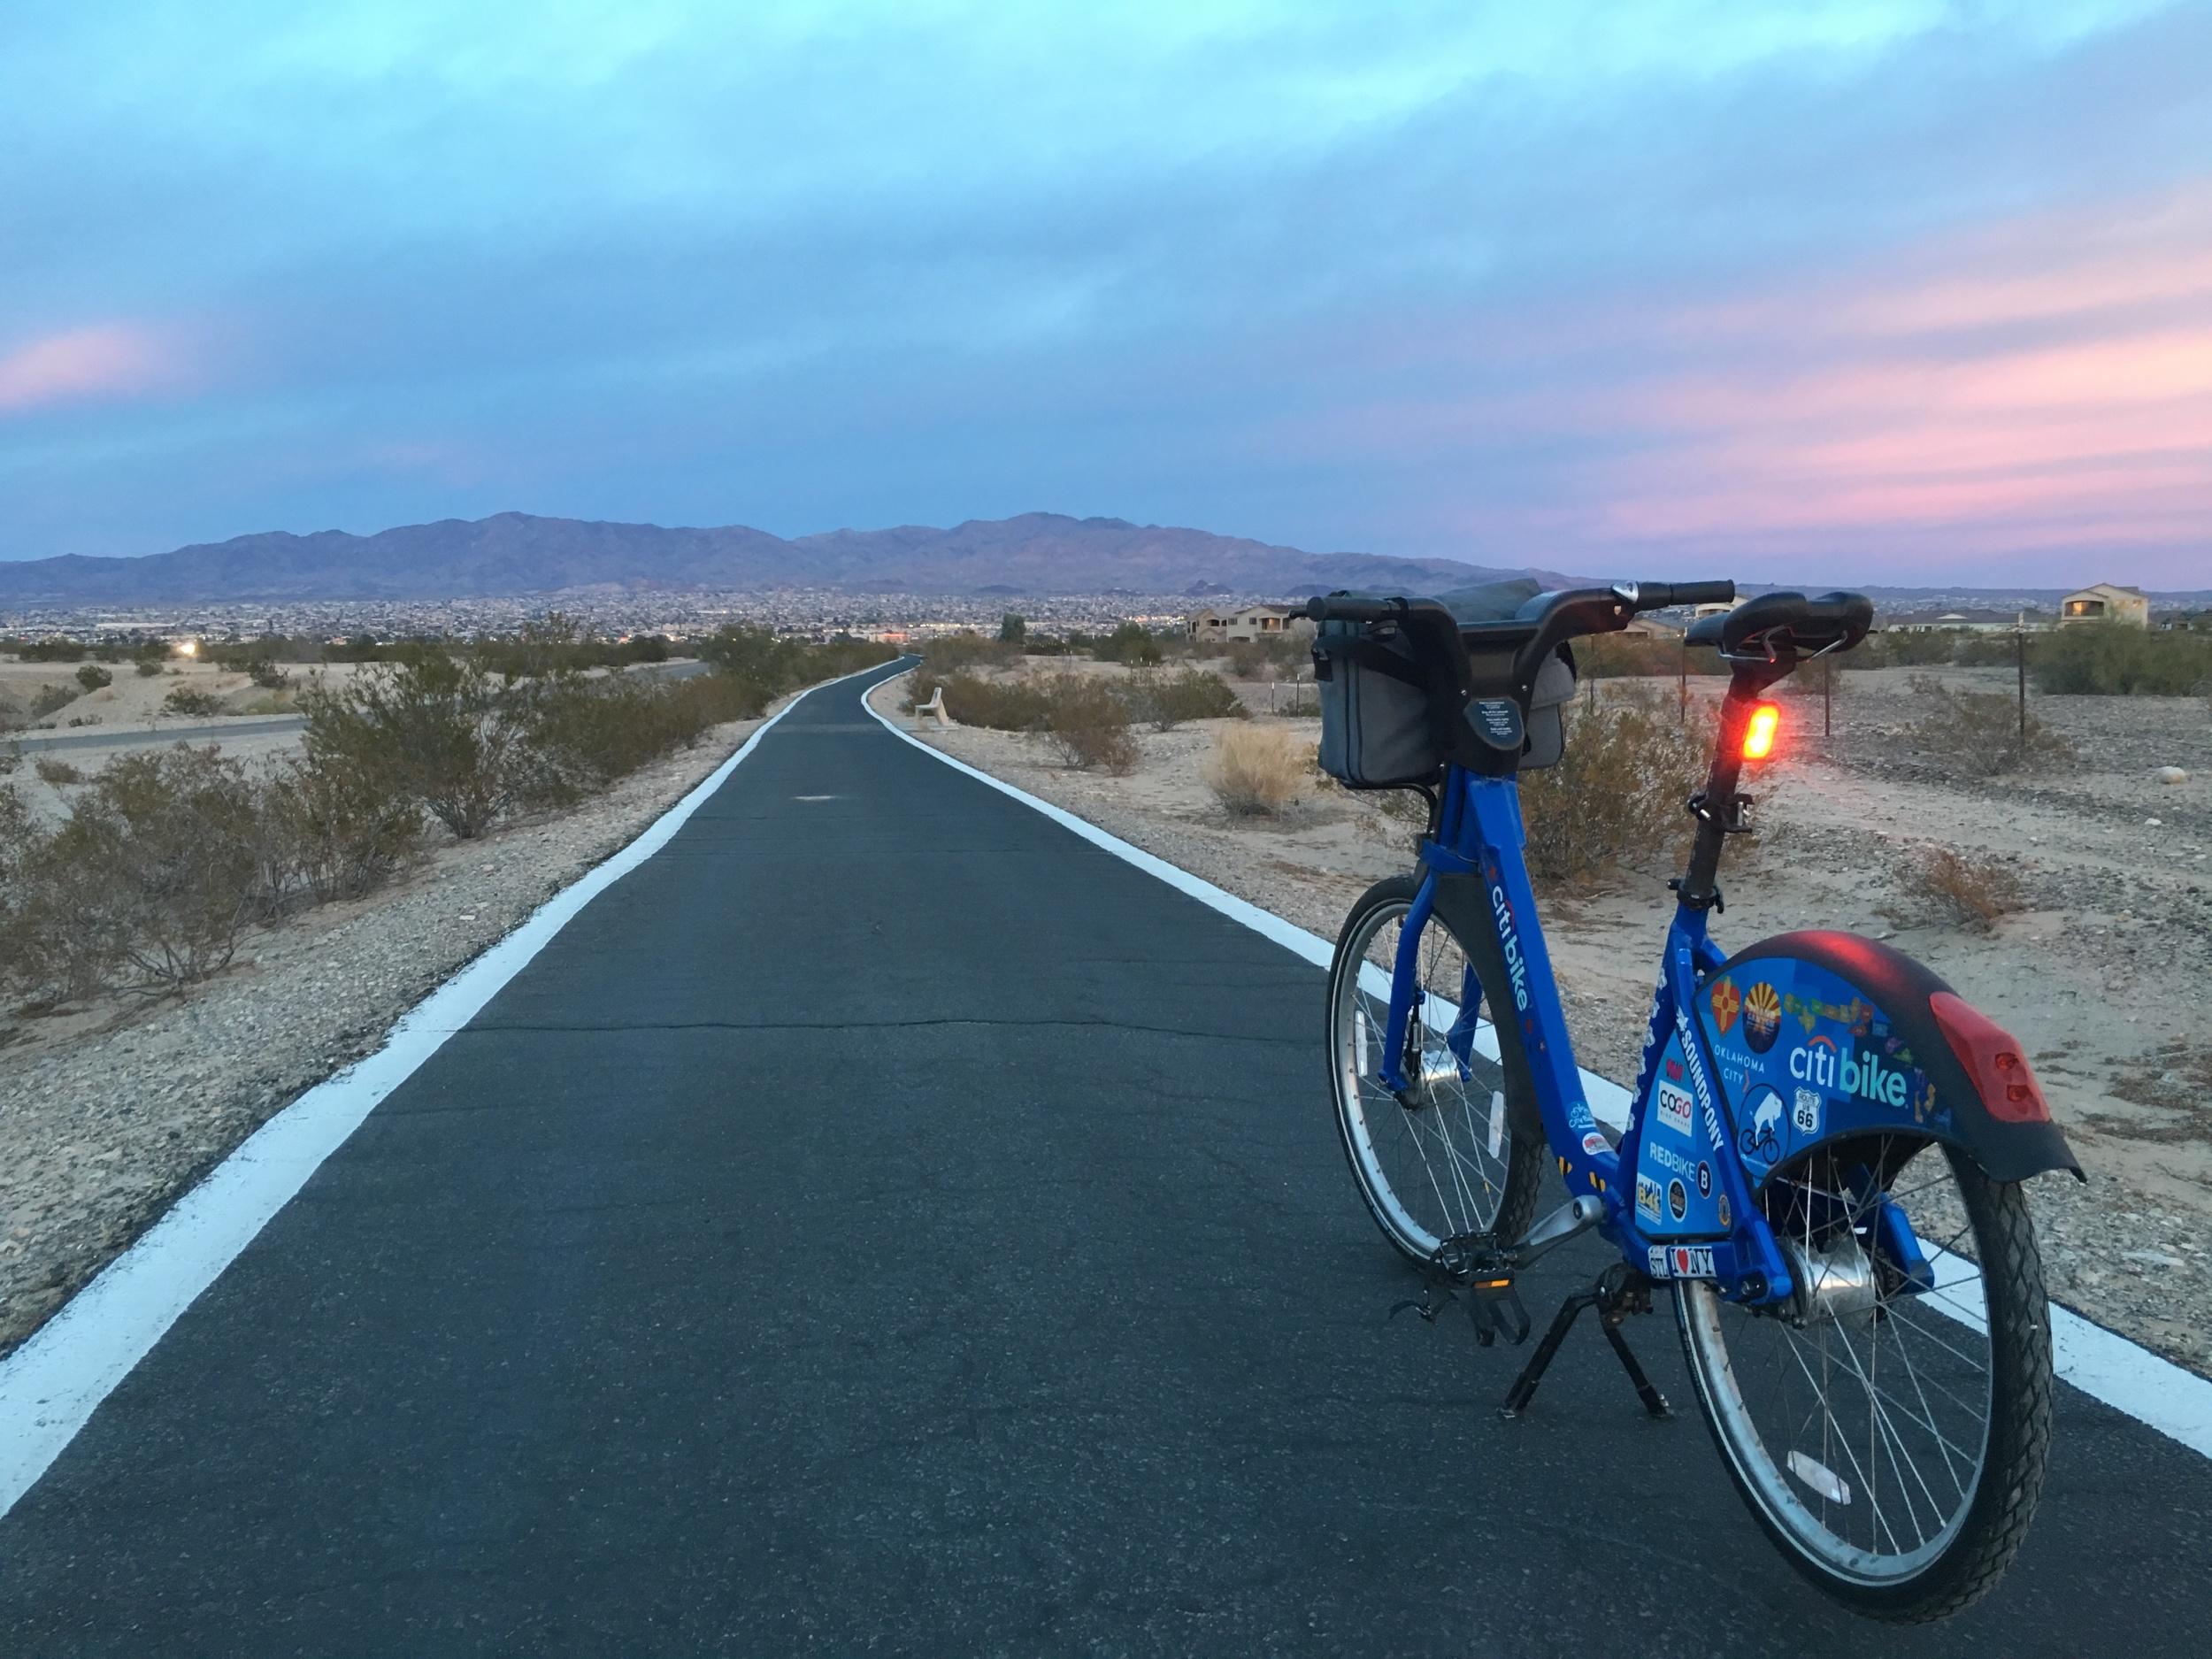 Bike path in Lake Havasu City, AZ